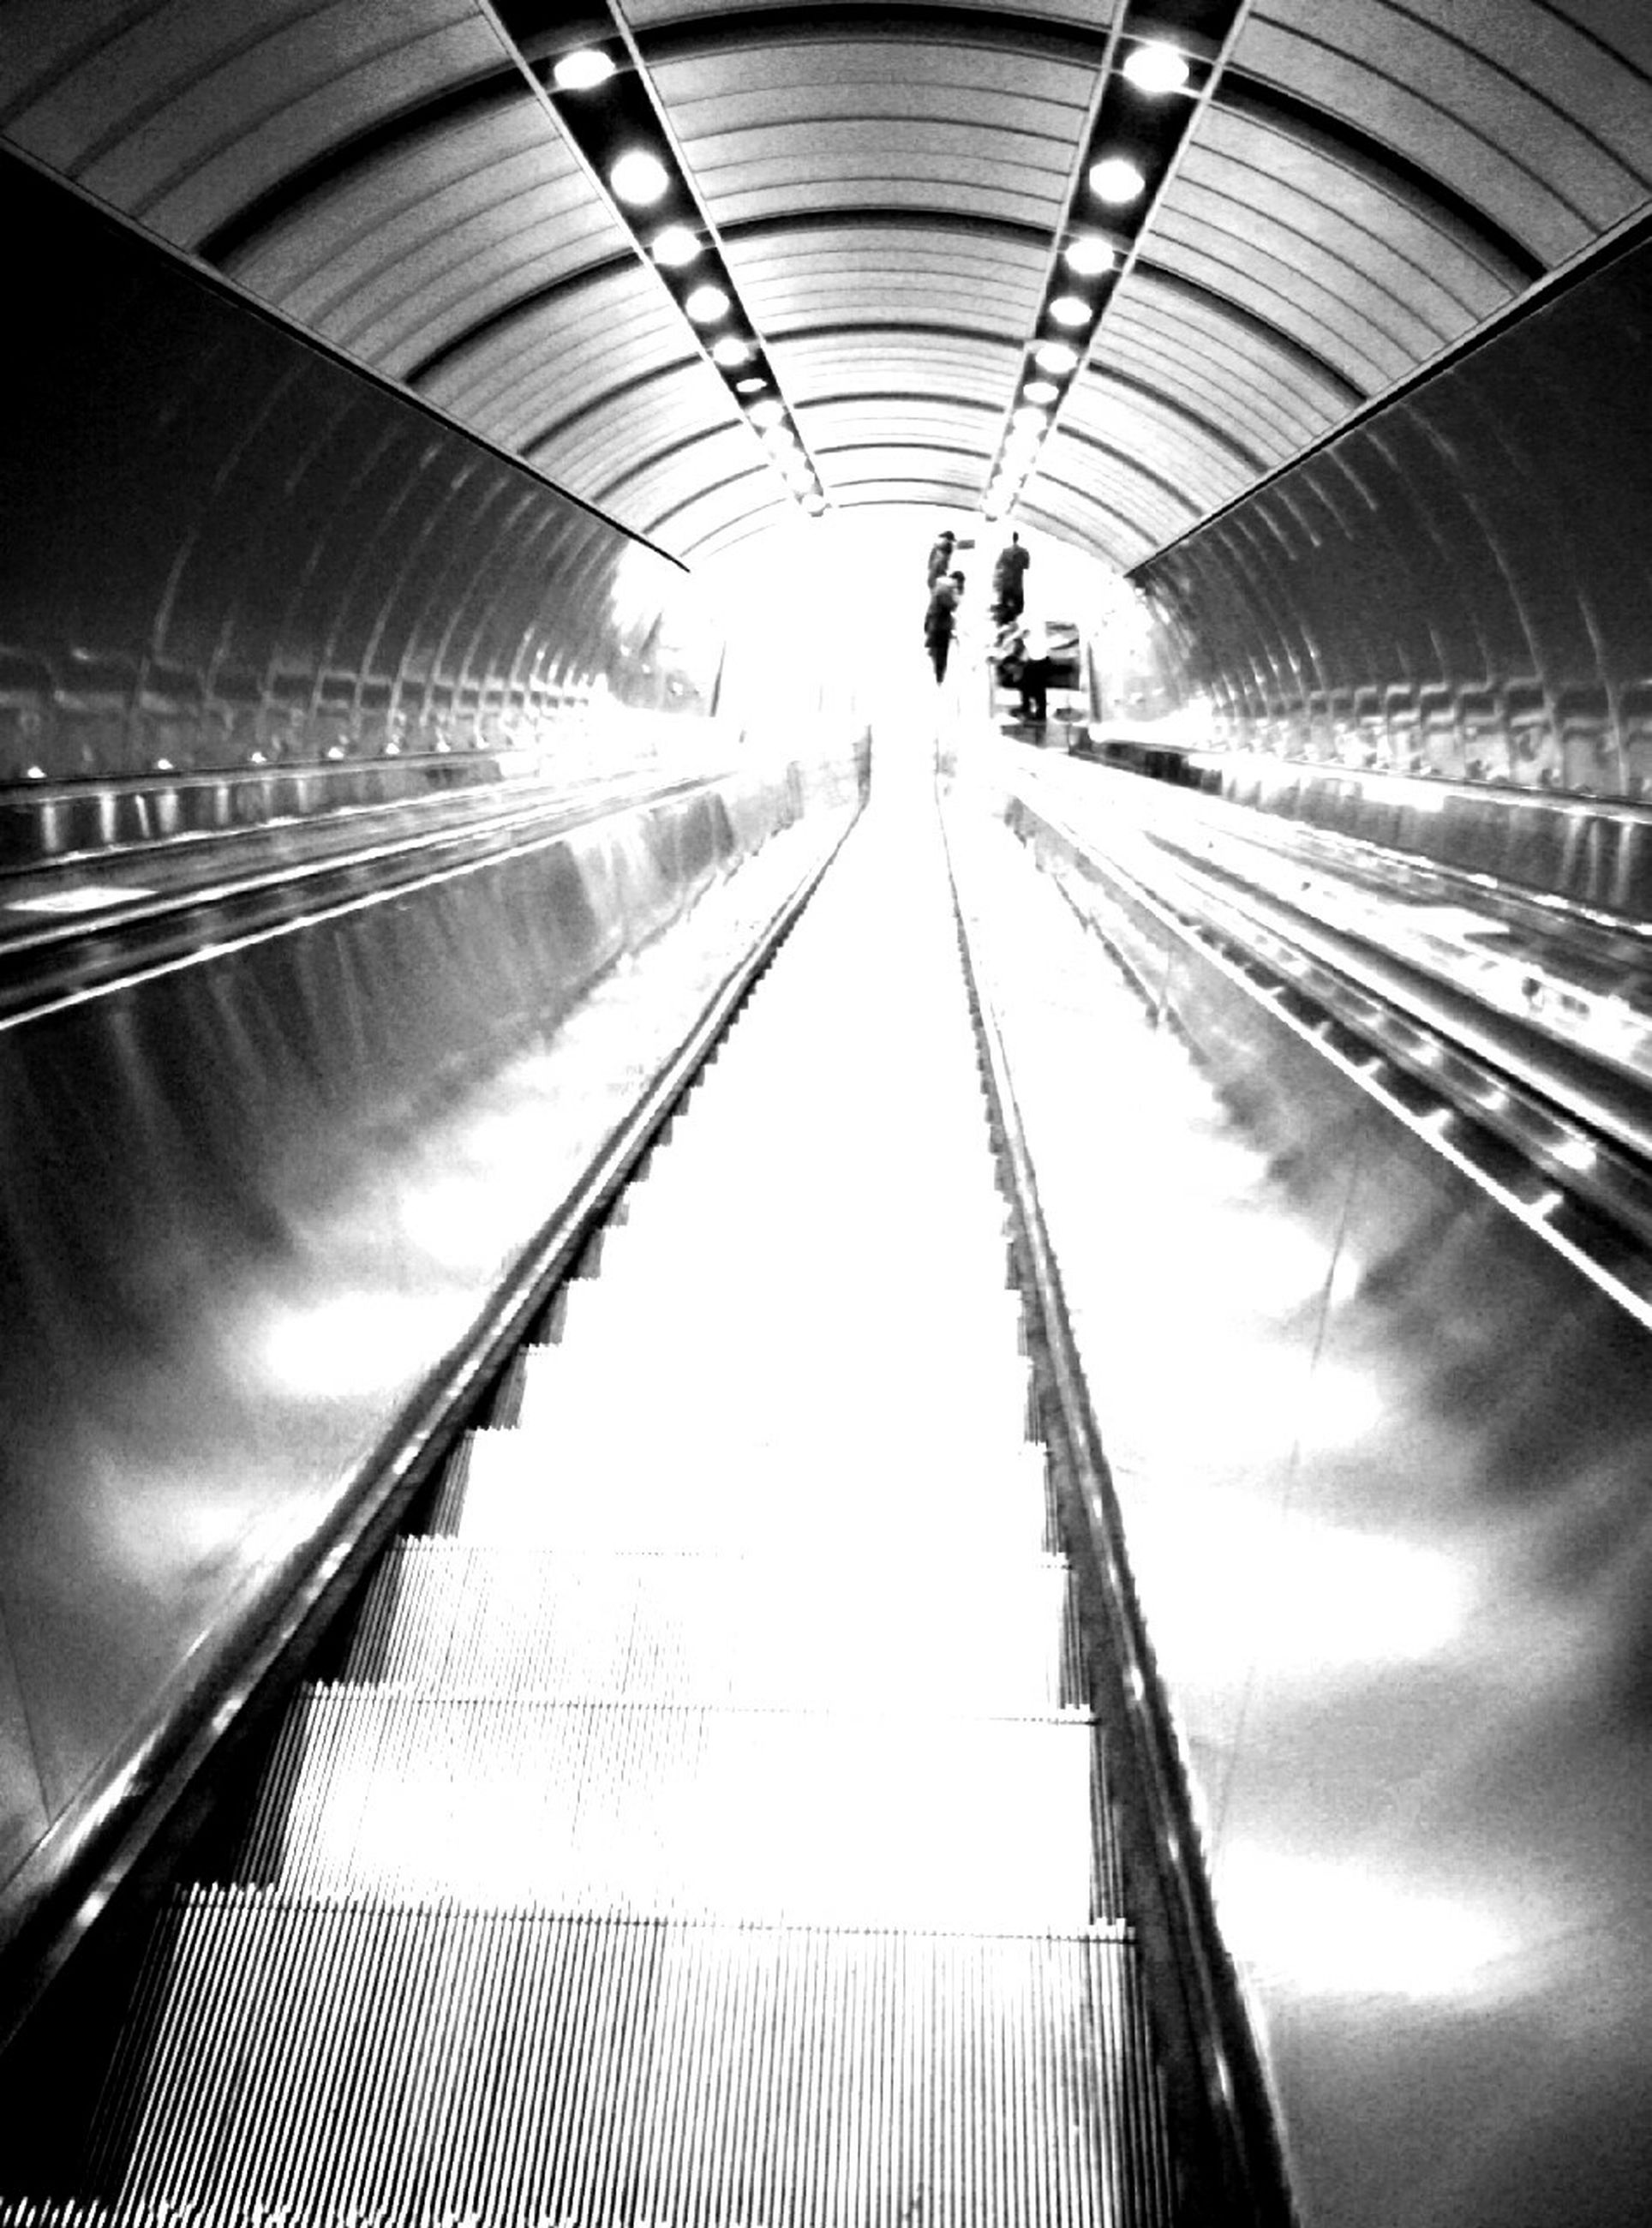 indoors, transportation, railroad station, rail transportation, railroad track, public transportation, railroad station platform, escalator, subway station, ceiling, modern, illuminated, subway, diminishing perspective, the way forward, built structure, architecture, travel, incidental people, convenience